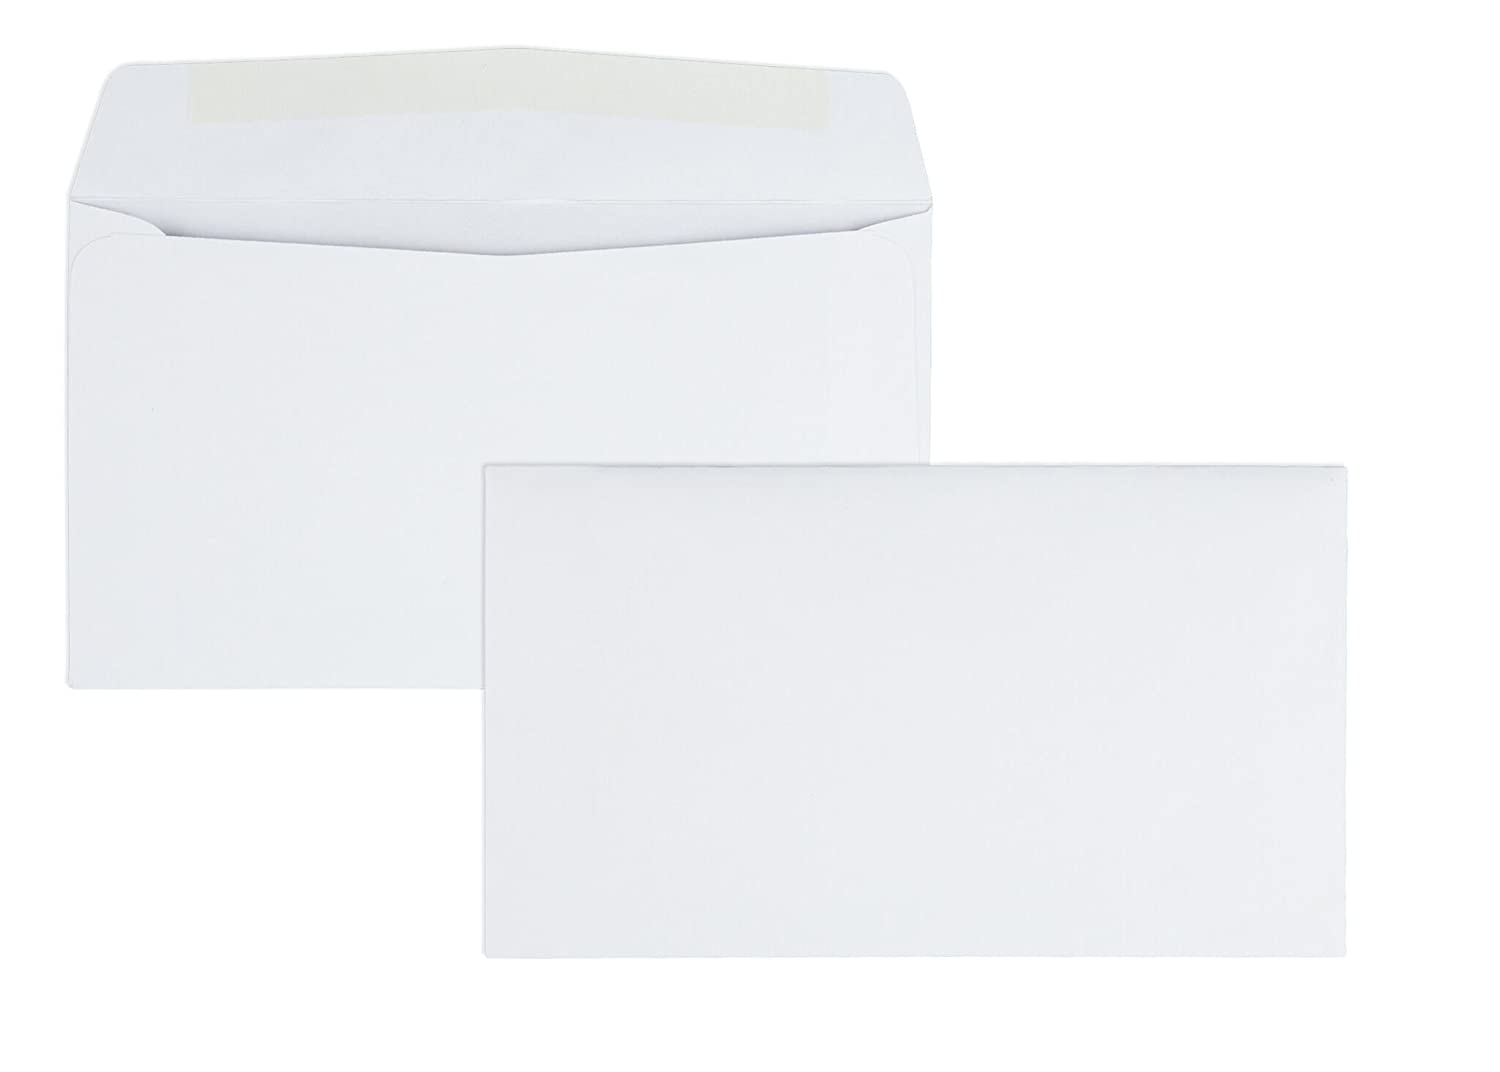 #6-3/4 Business Envelopes with a Gummed Flap for Standard Remittance Business Mailing, 24 lb White Wove, 5-3/8 x 6-1/2, 500 per Box (90070)